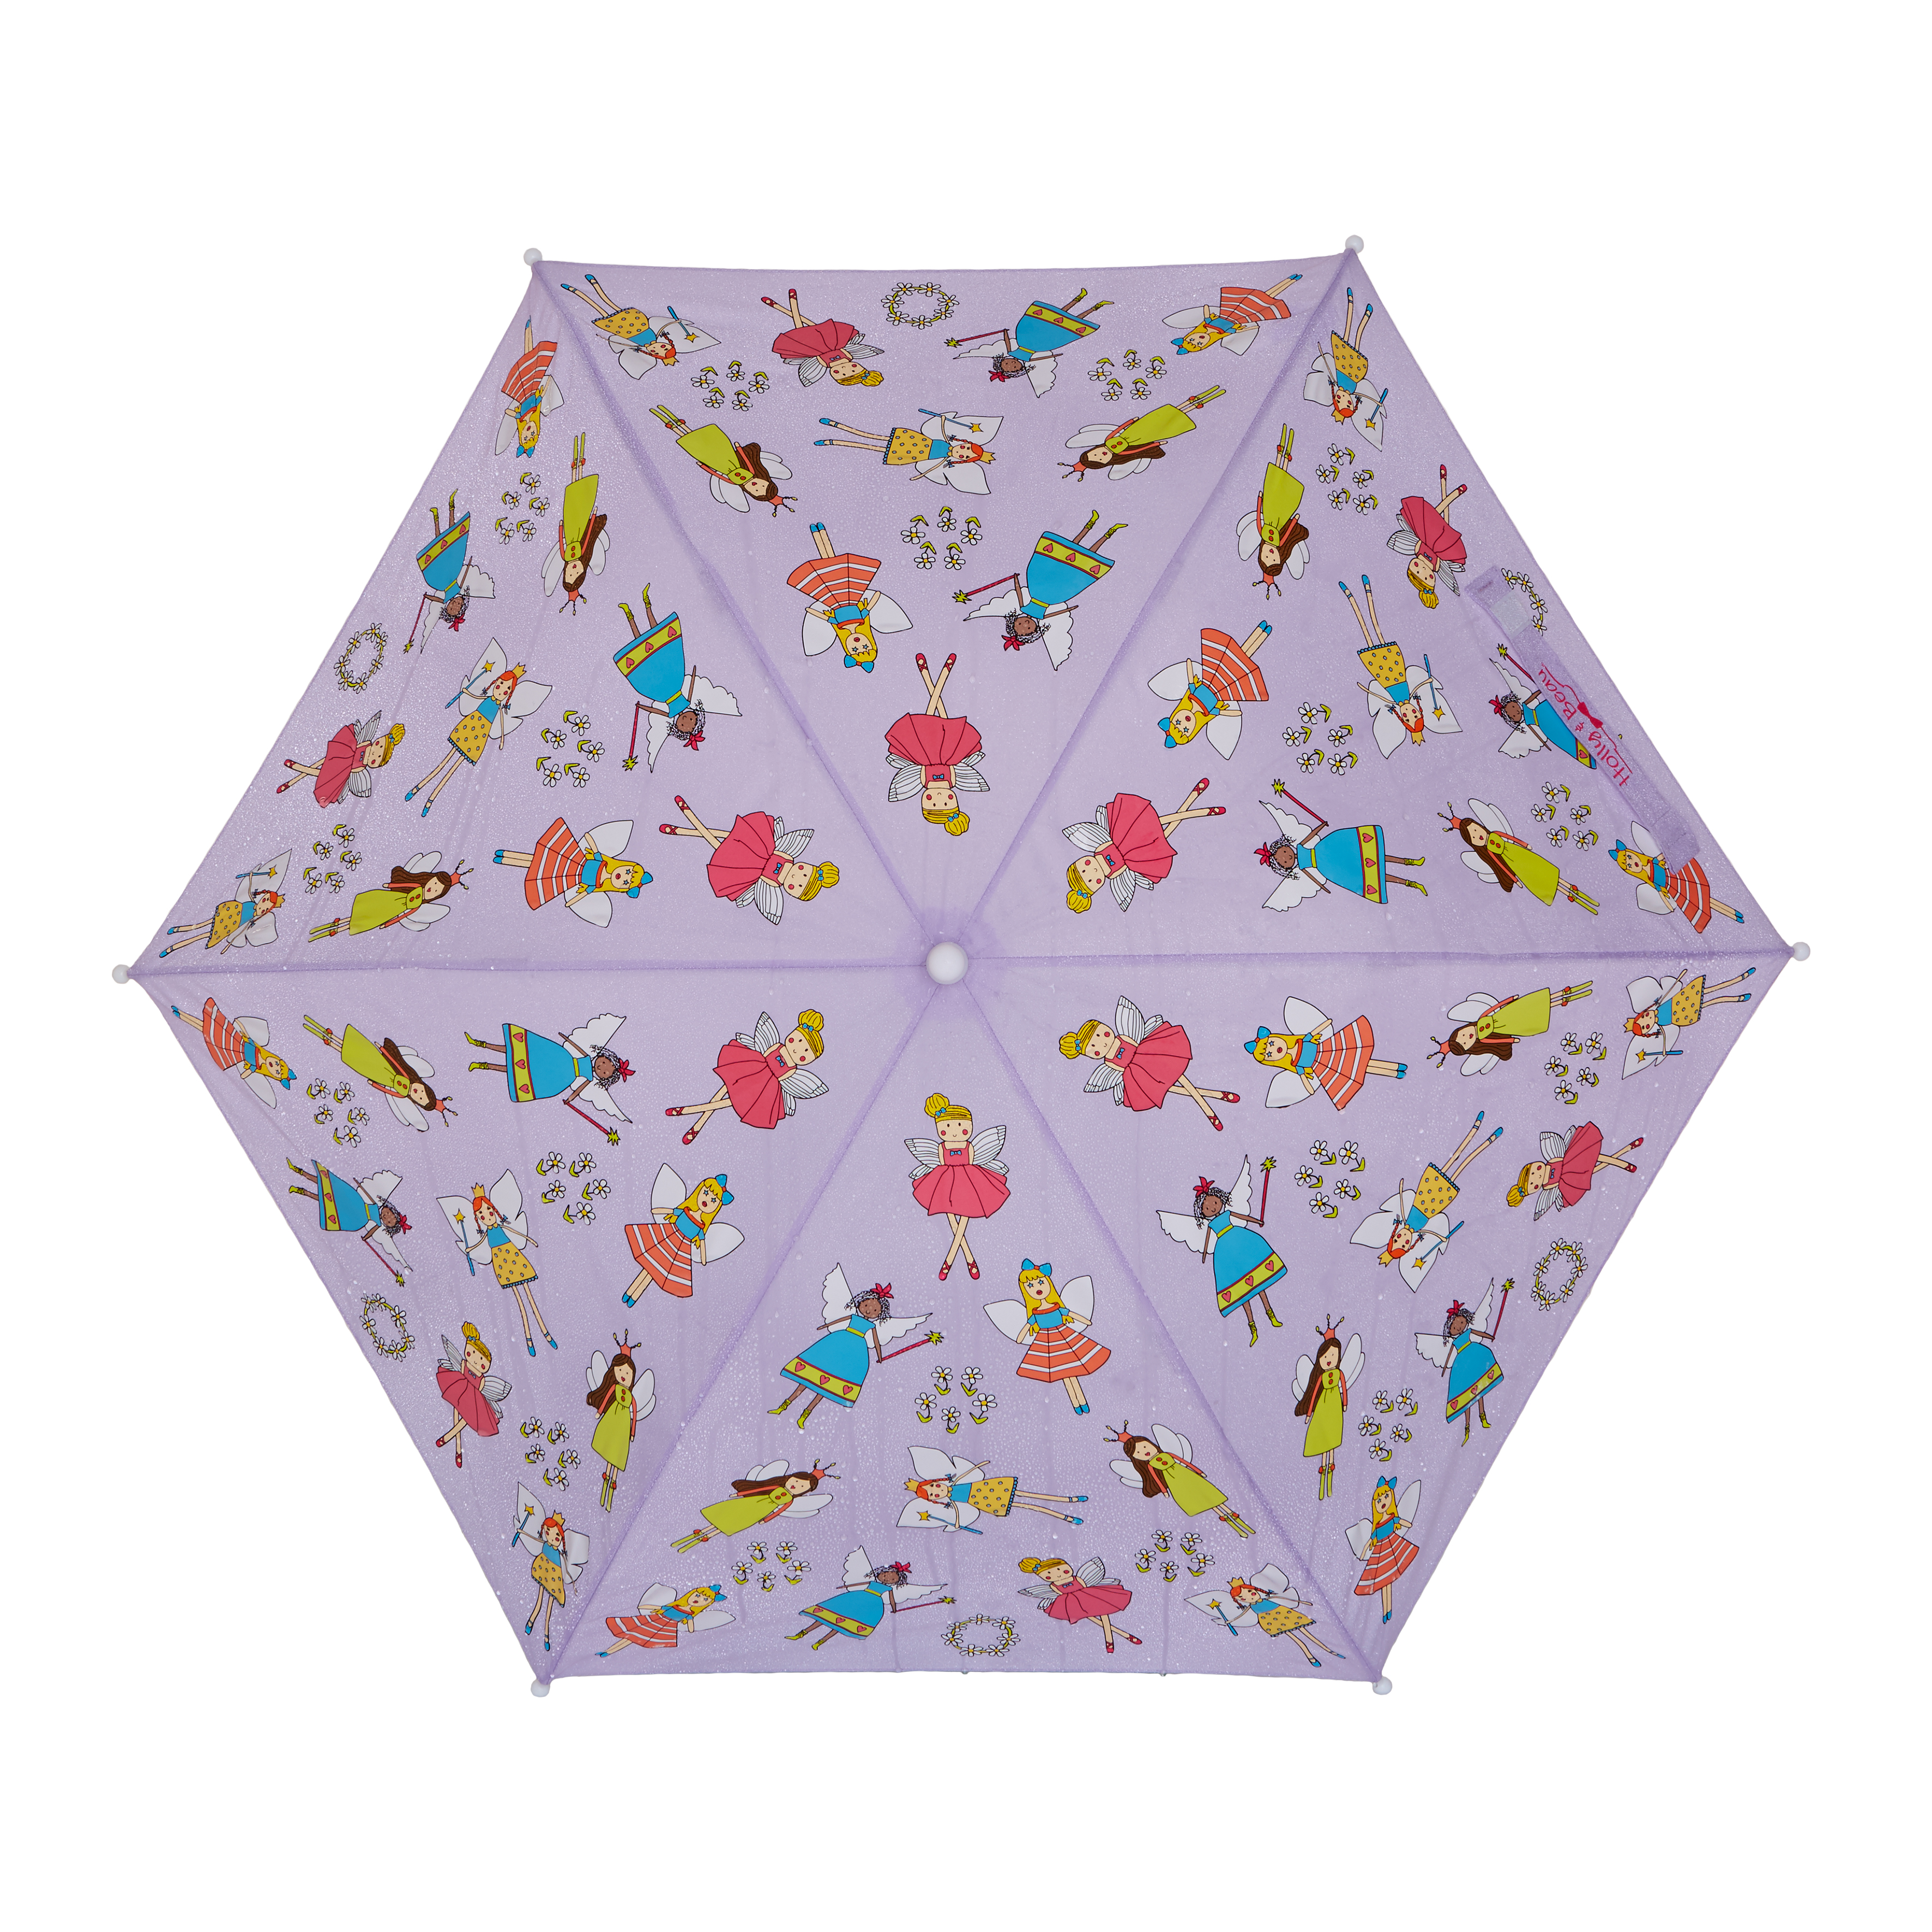 Cats and Dogs Colour Changing Umbrella.